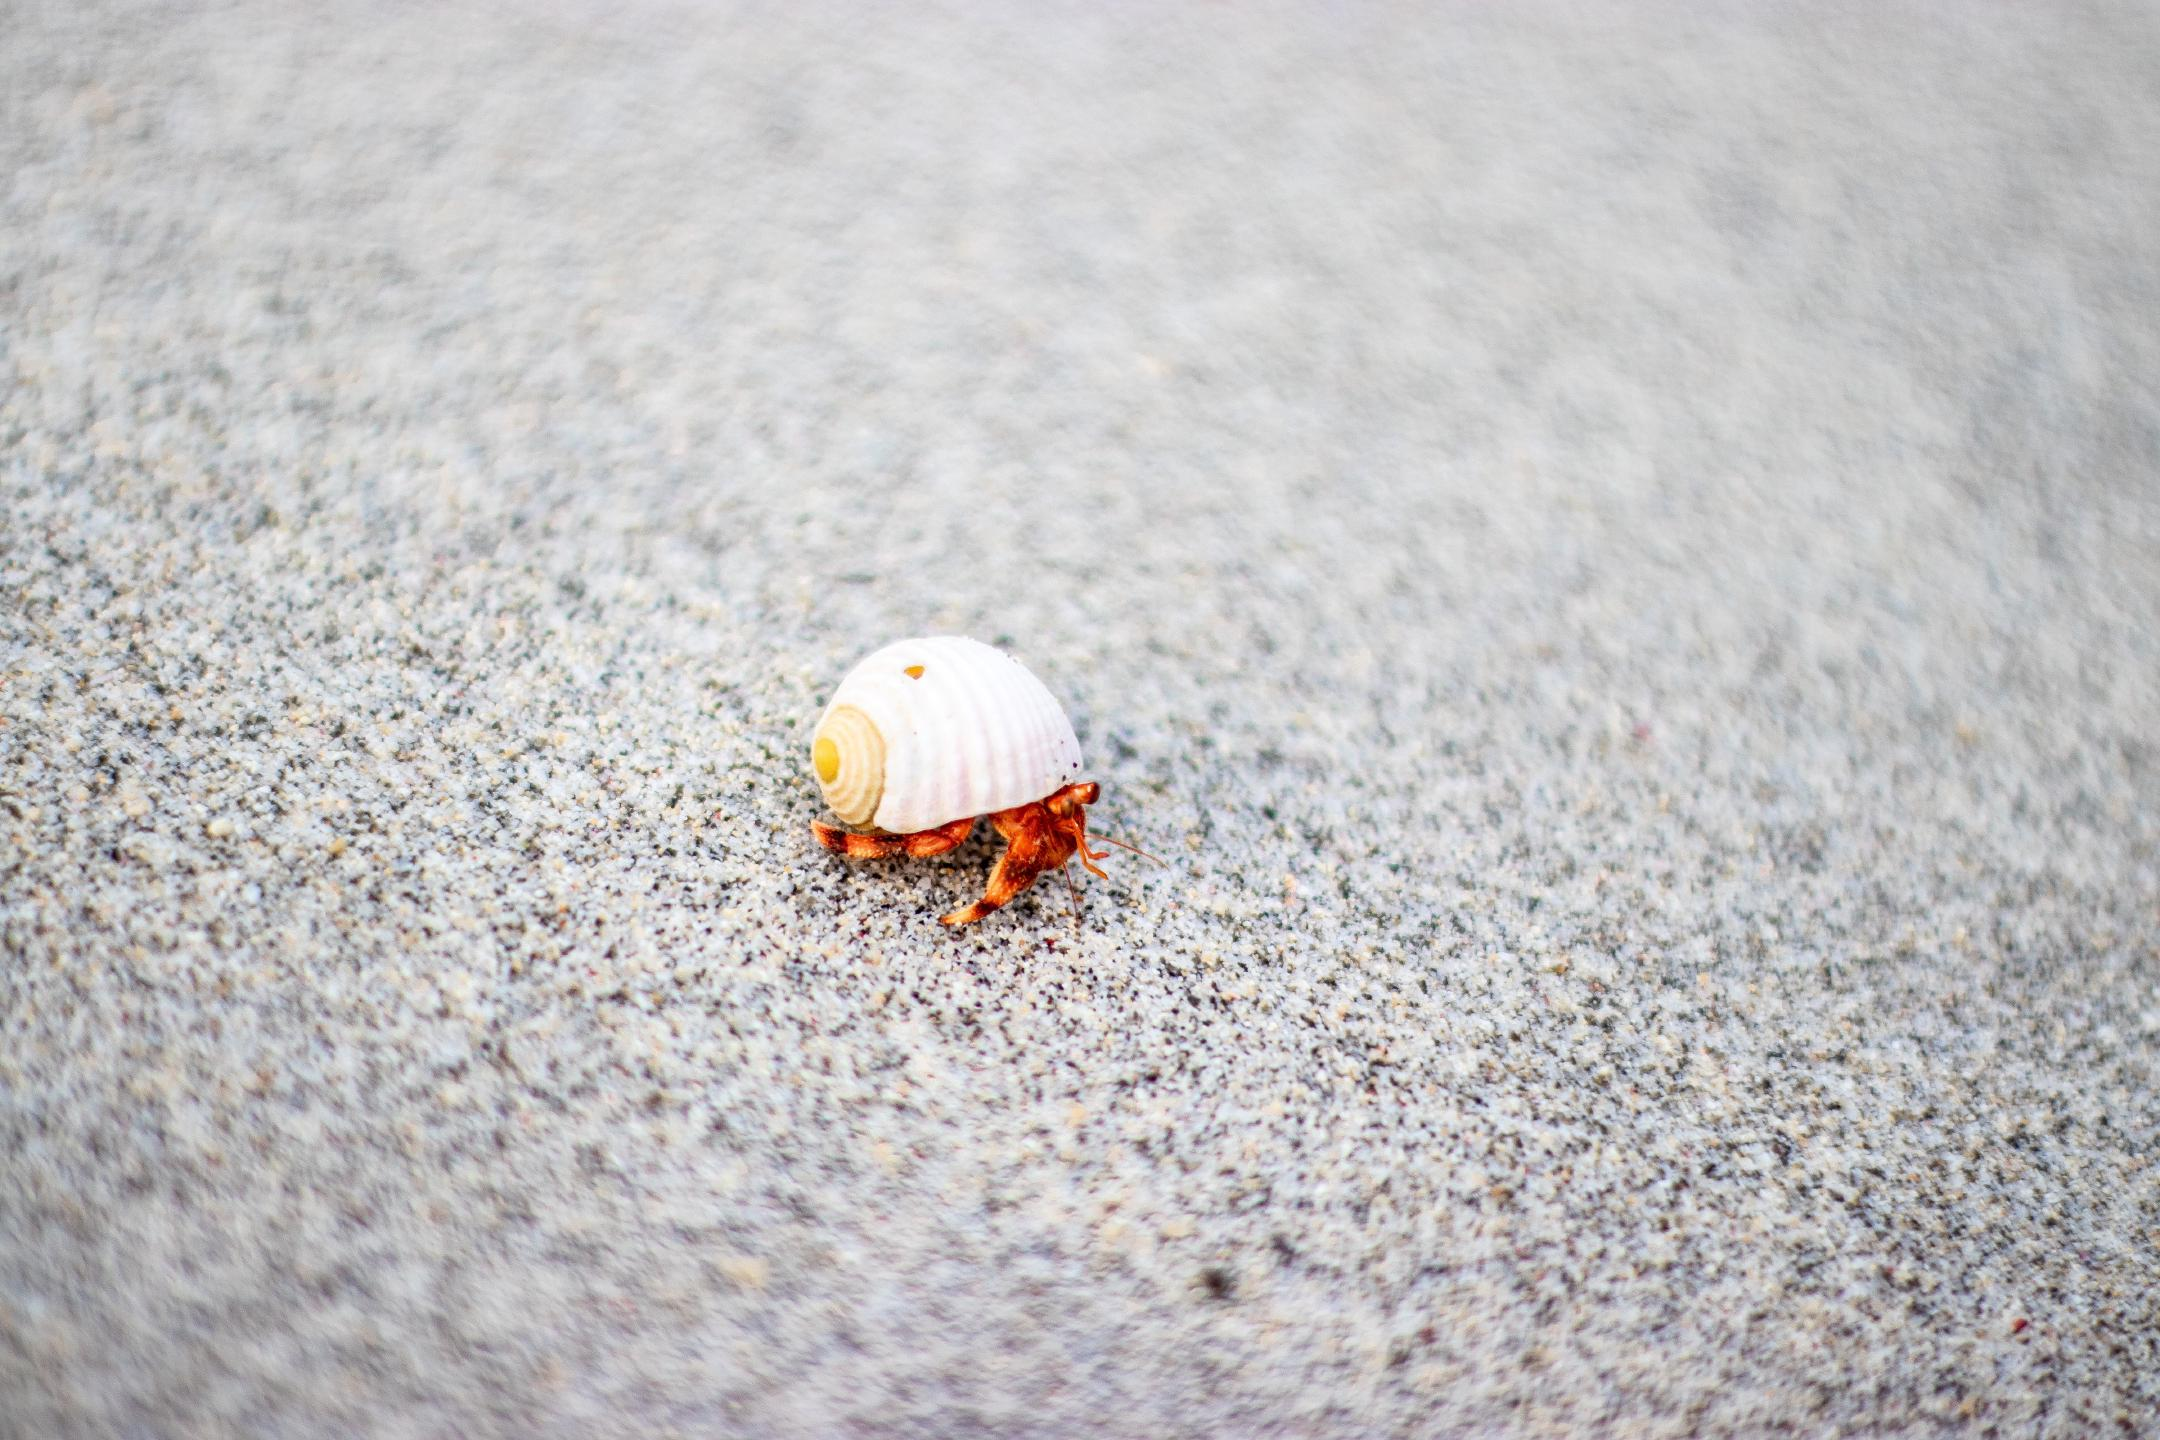 a small orange crab in a white shell walking across a sandy beach